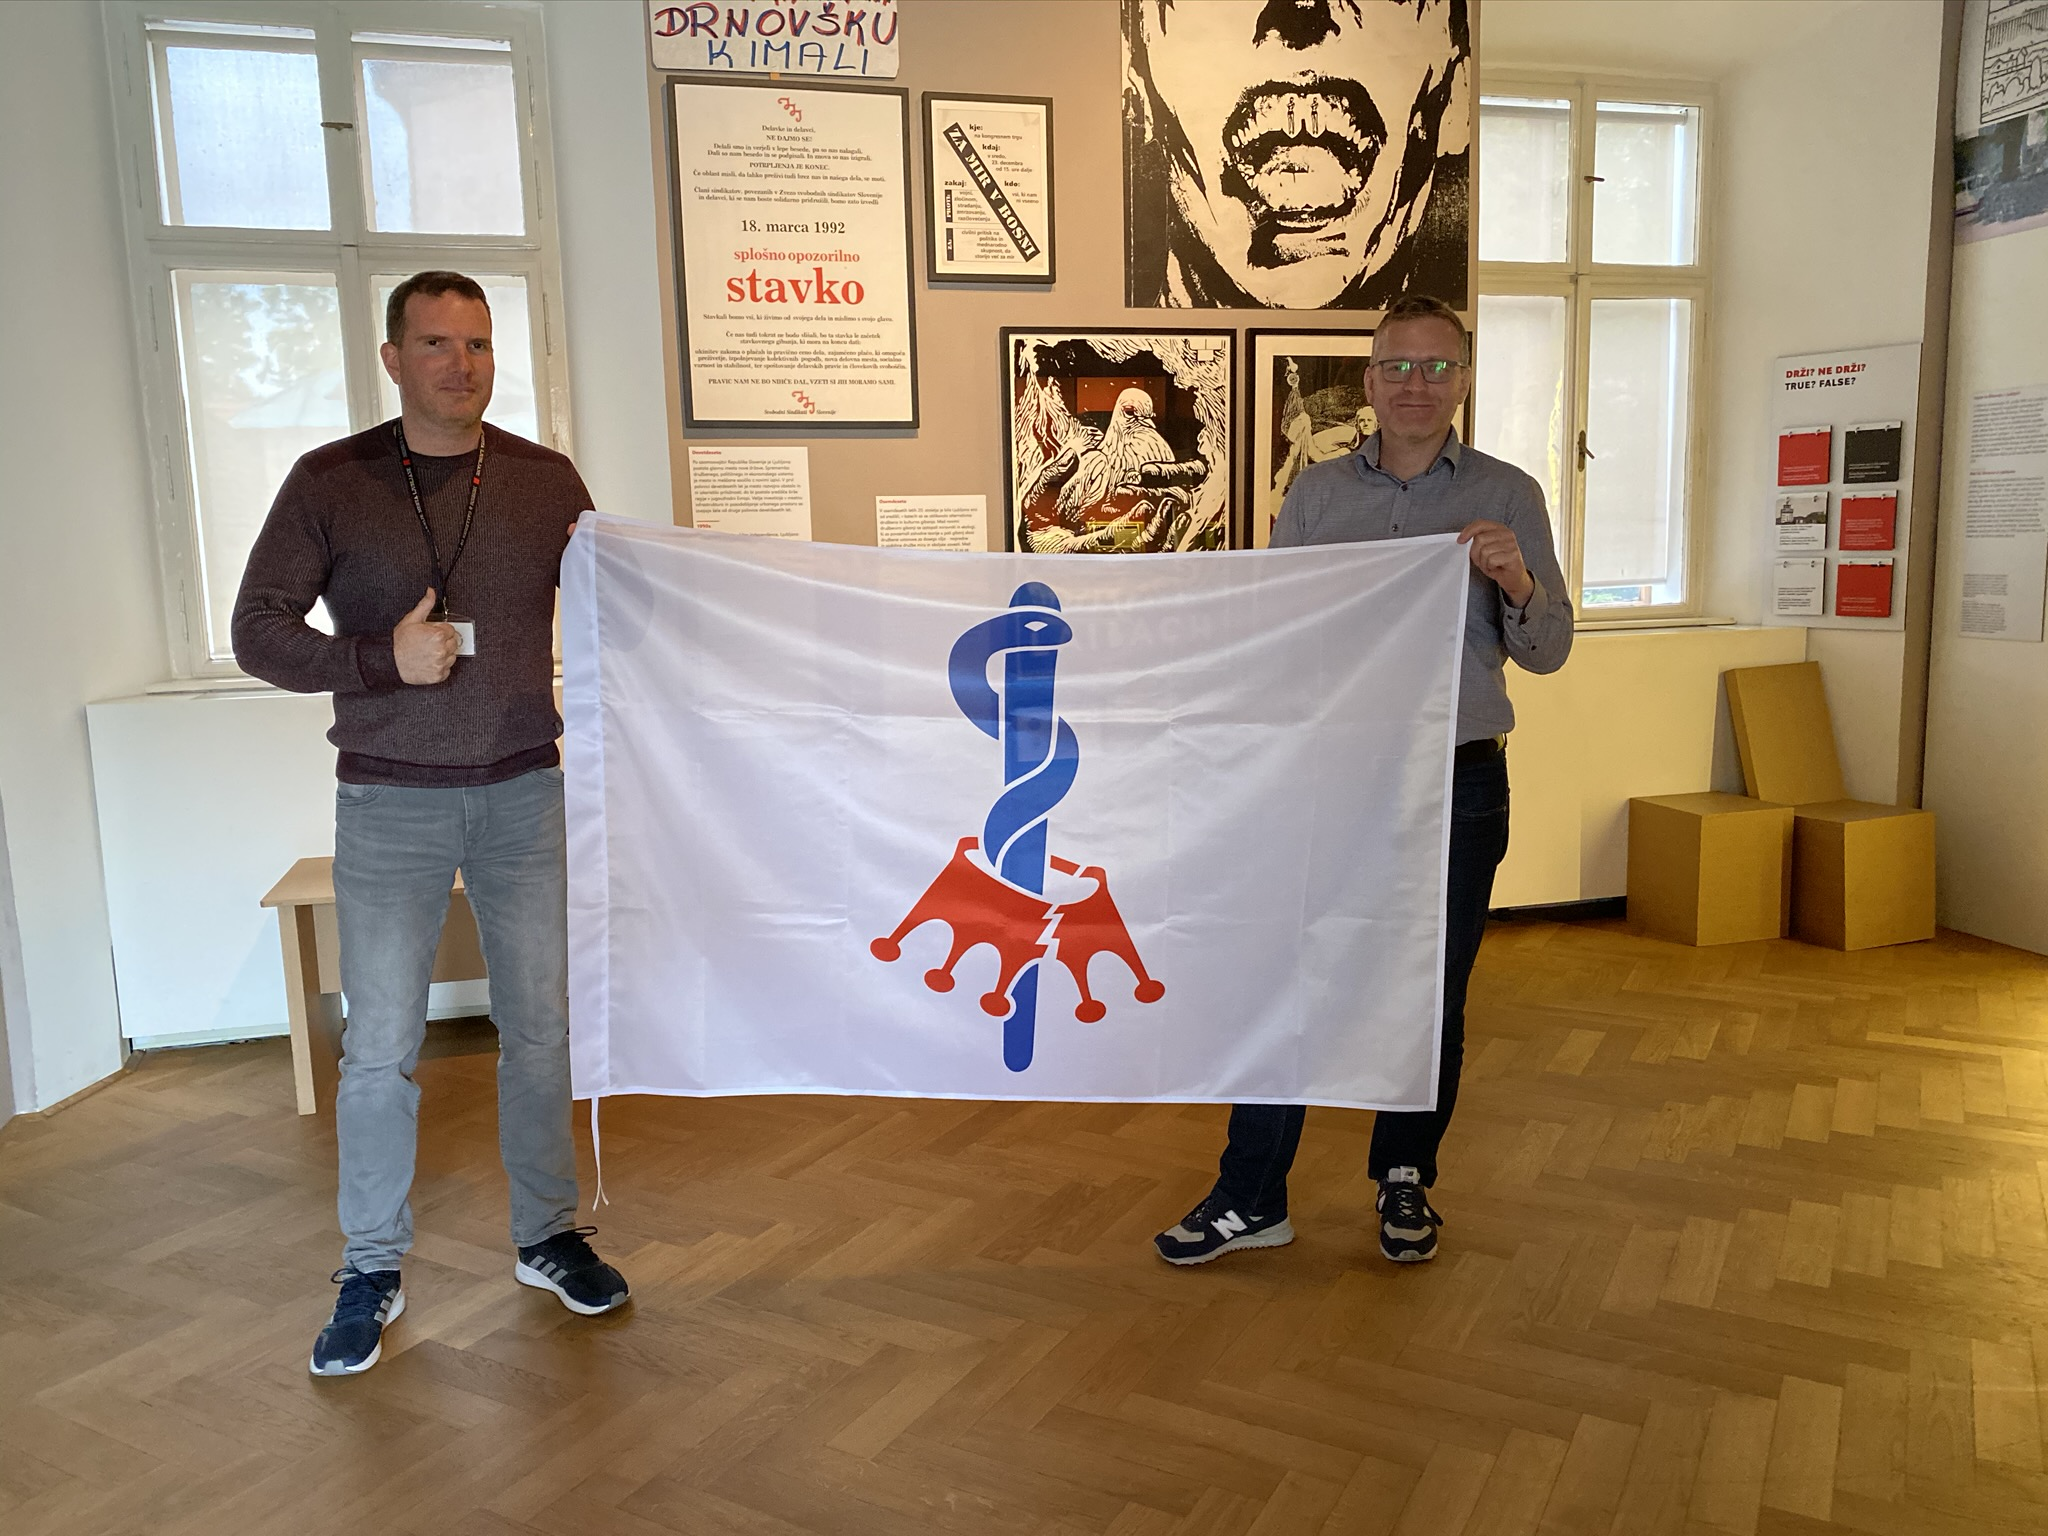 Handing over the prototype flag to the historical collection of the Museum and Galleries of the City of Ljubljana. The picture shows President Aleksander Hribovšek and curator Blaž Vurnik. Photo: Martin Horvat, 18 May 2020.